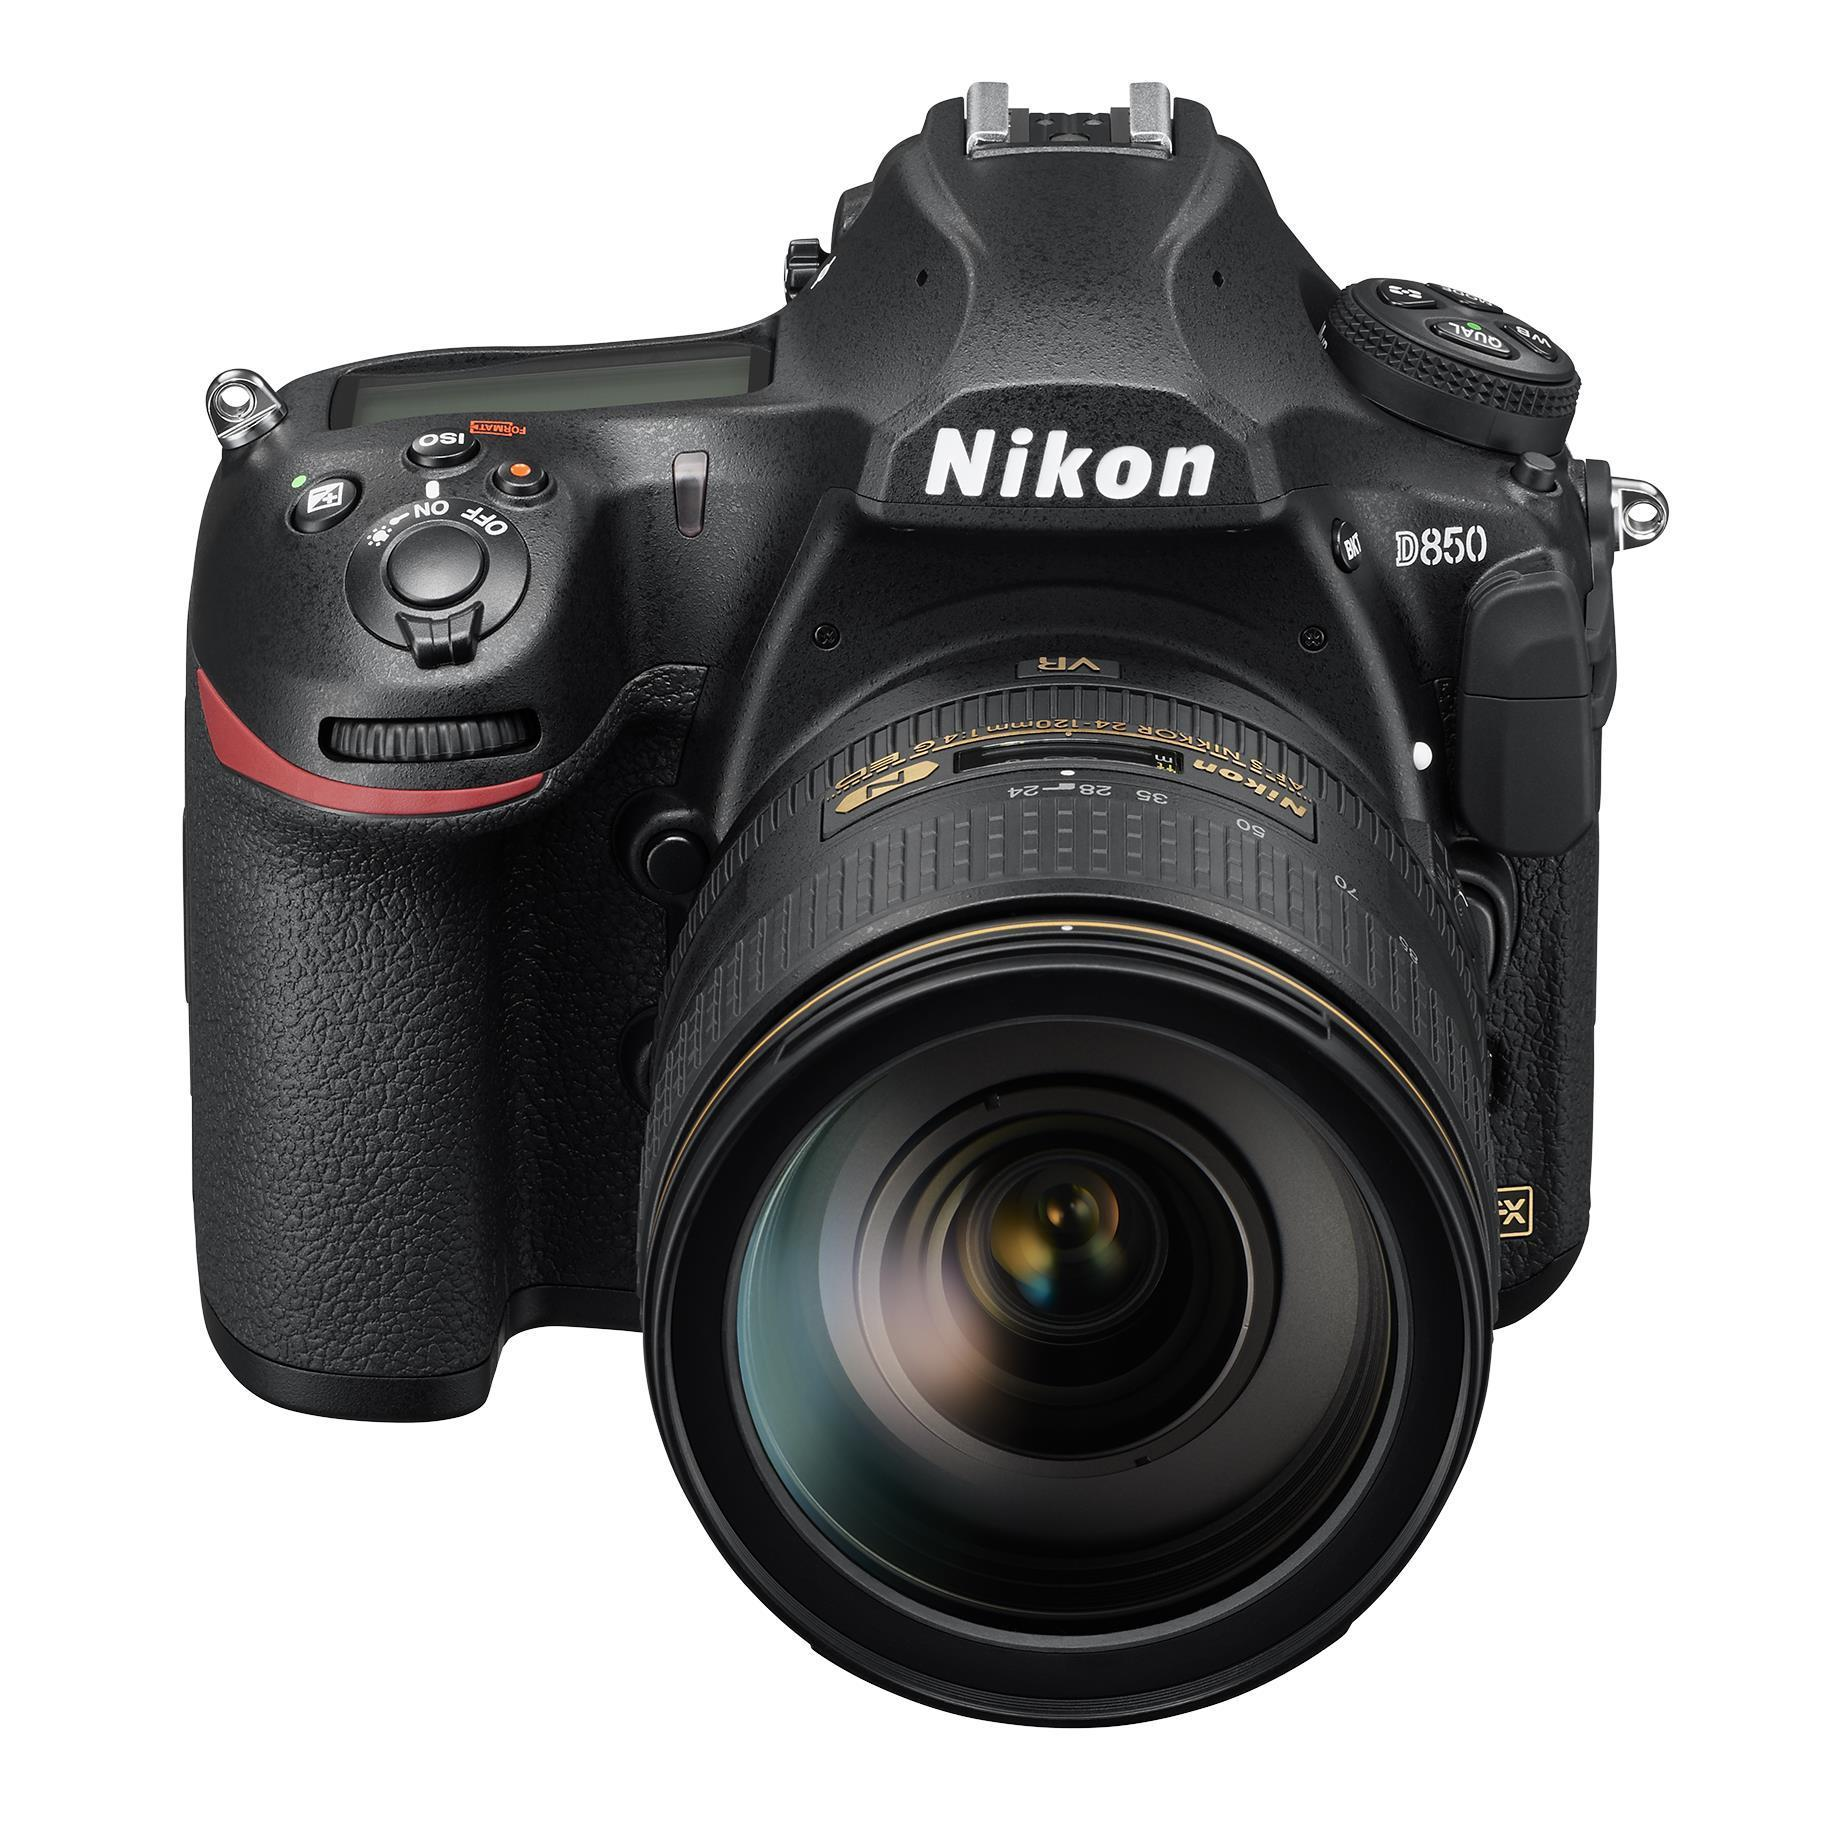 Nikon D850 Full Frame DSLR Camera with 24-120mm Lens [4K Video]